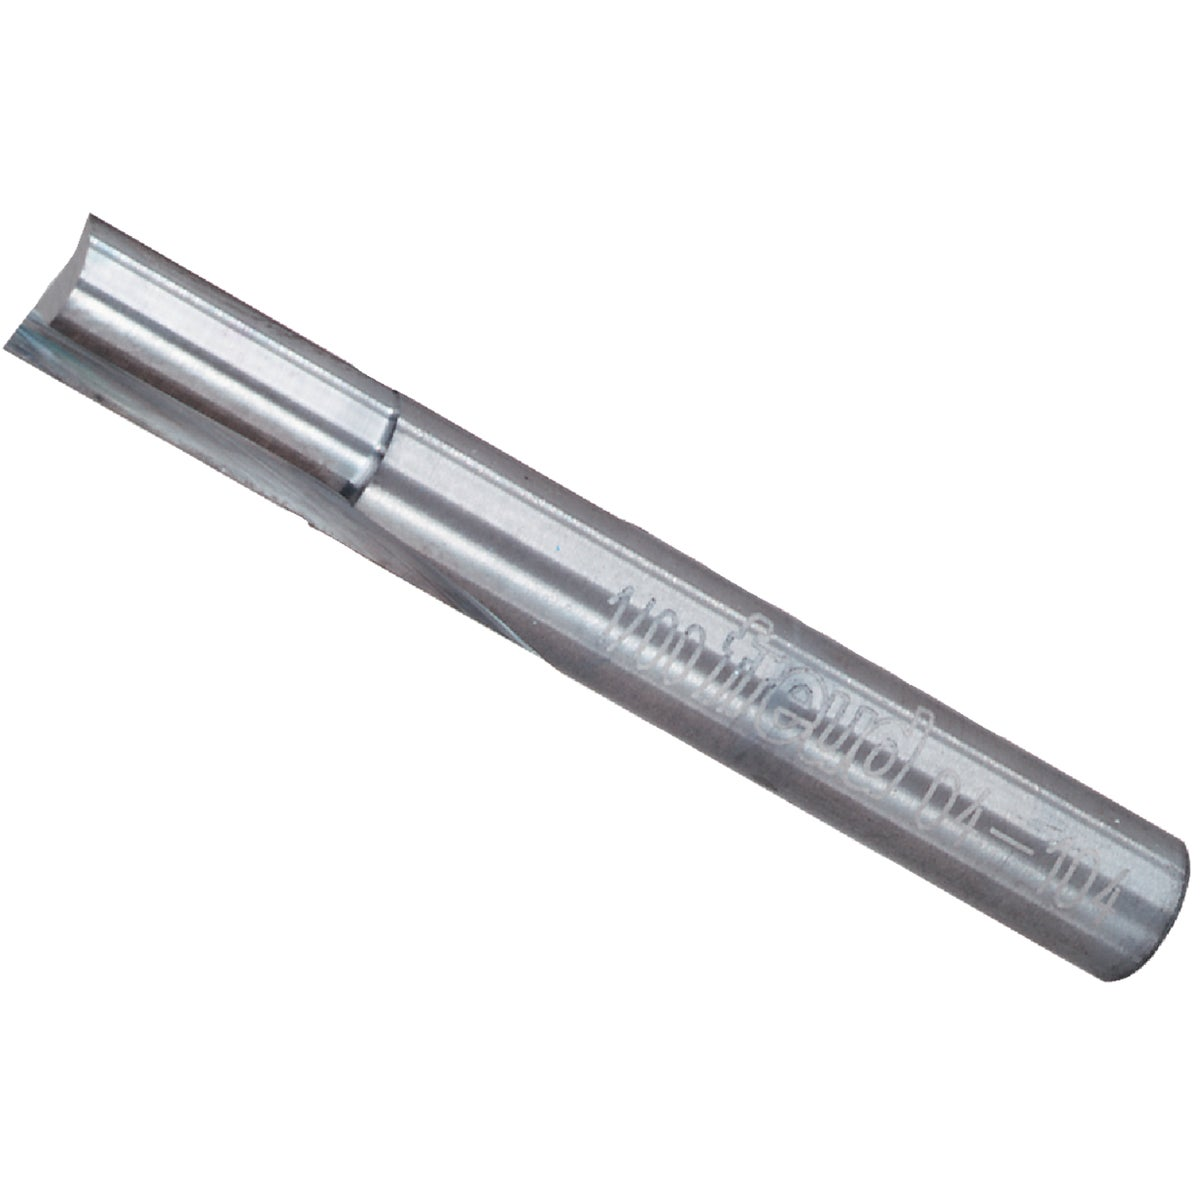 "1/4"" 2-FLT STRAIGHT BIT - 04-104 by Freud Inc"